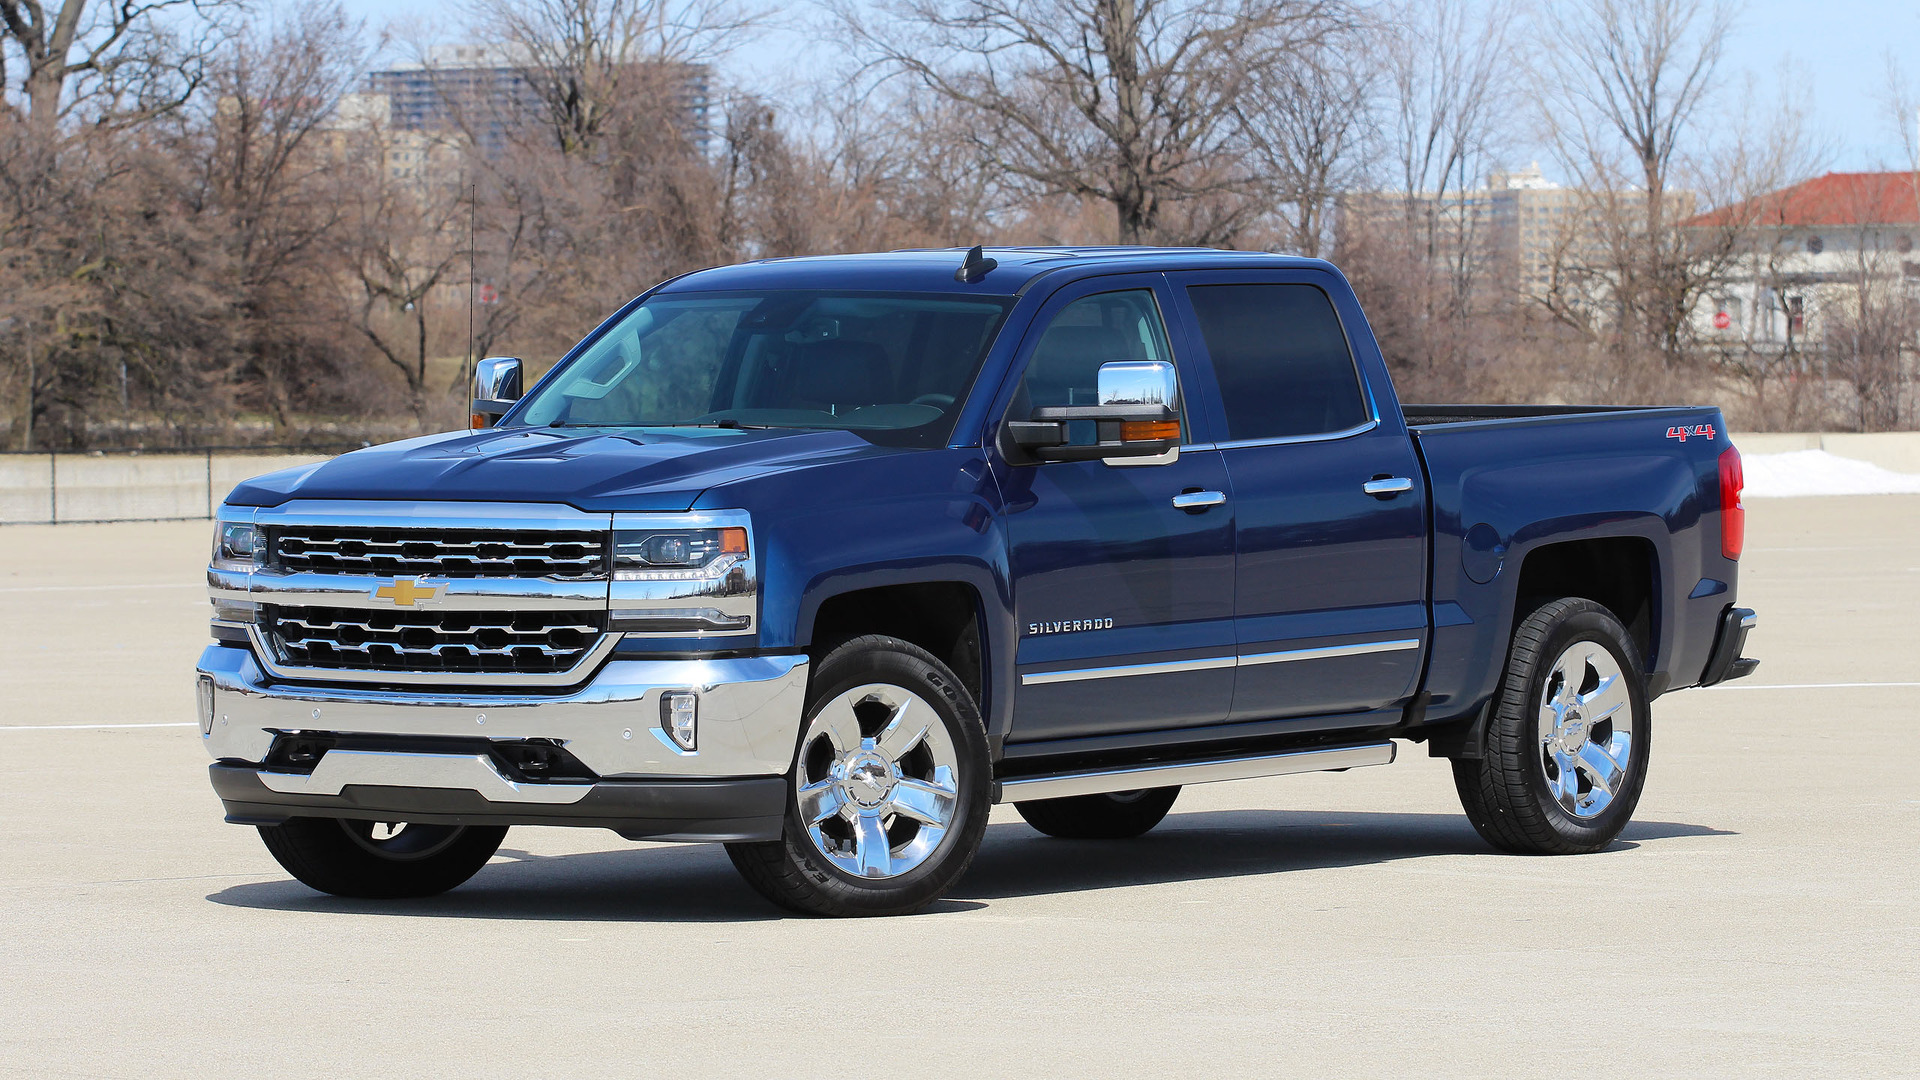 Thoughts On The 2019 Silverado Trucks